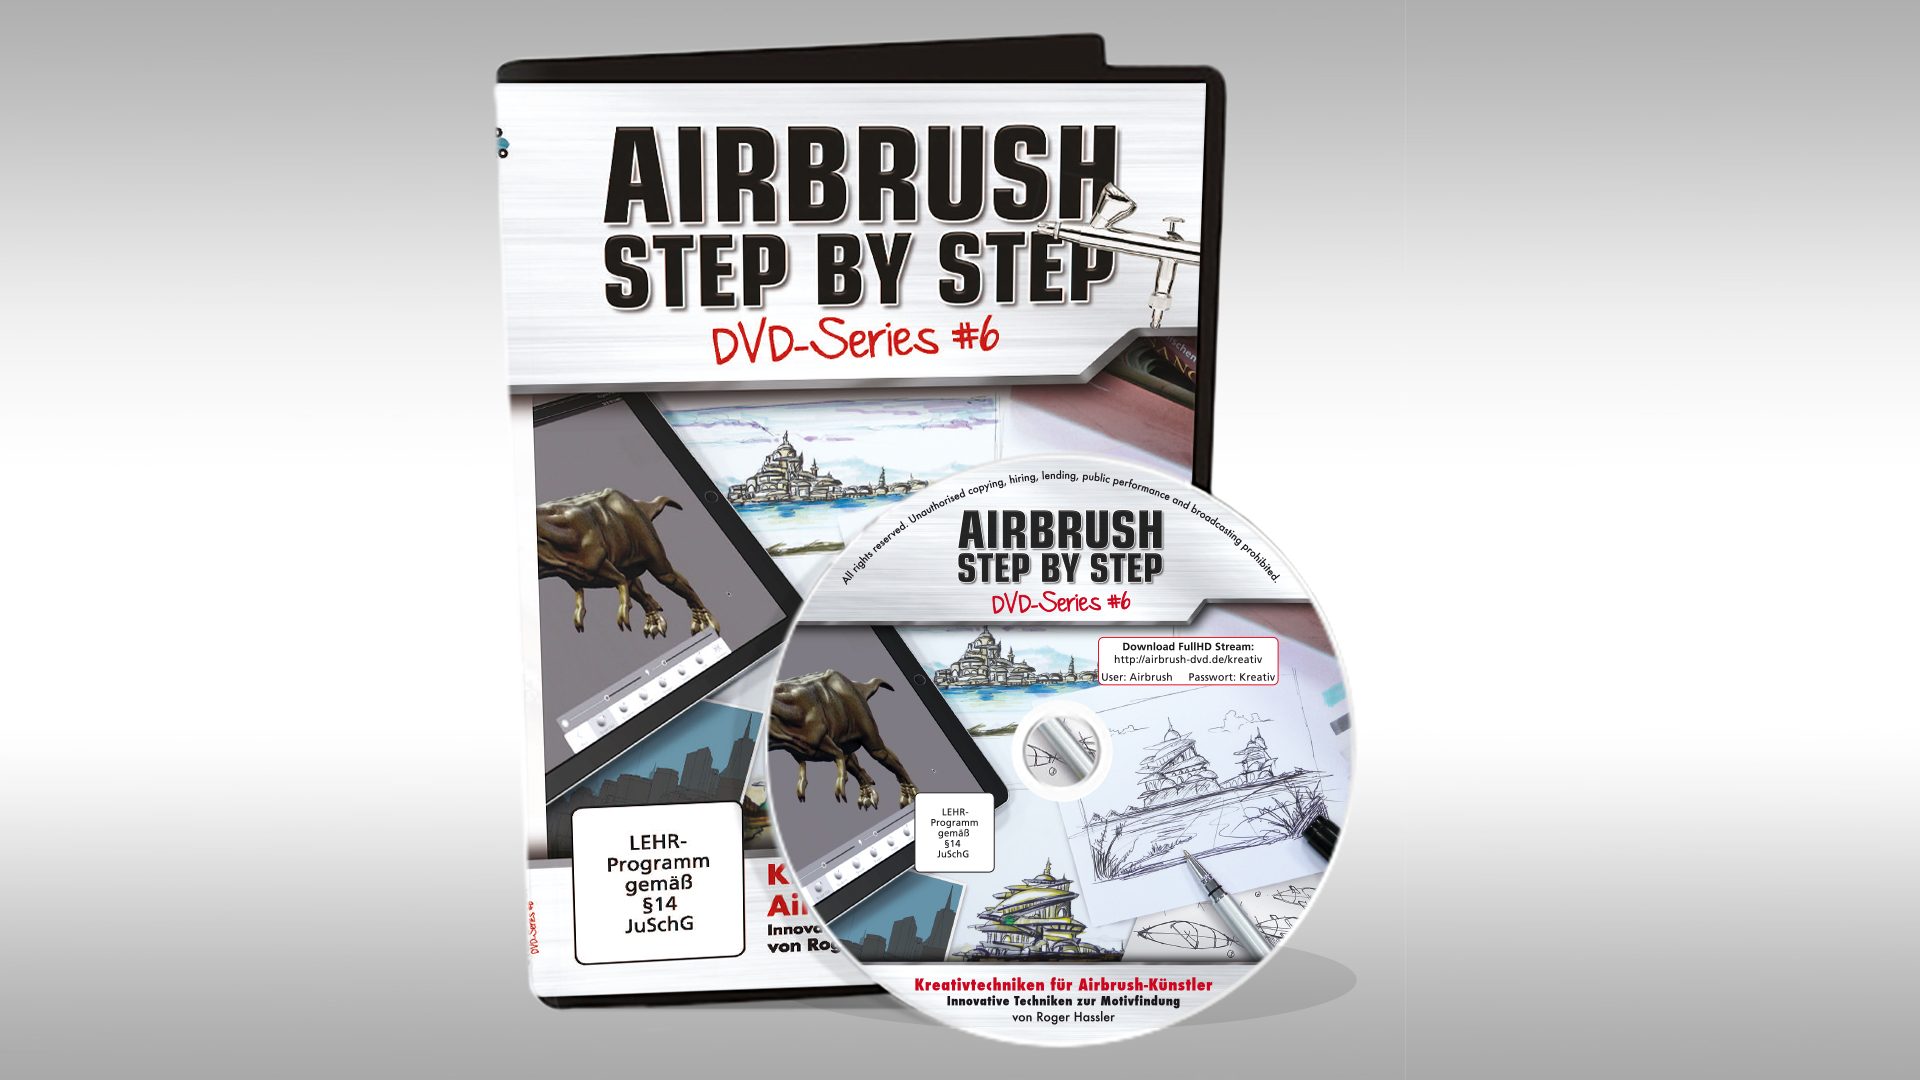 Airbrush Step by Step DVD-Series #6: Kreativtechniken für Airbrush-Künstler